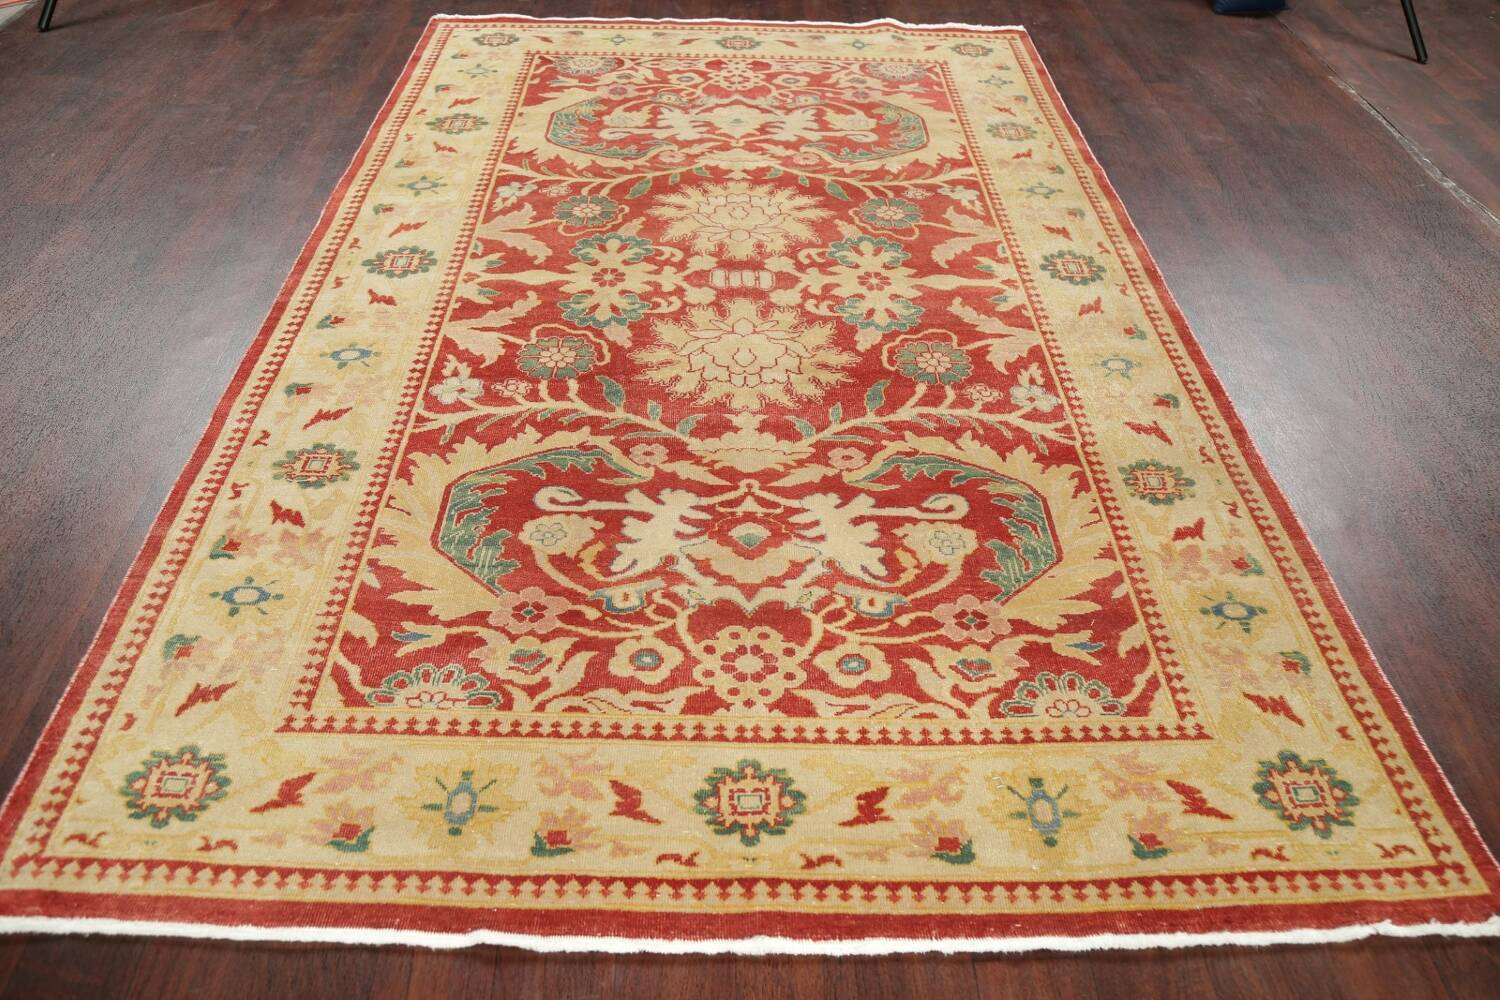 Floral Red Oushak Egyptian Area Rug 6x9 image 15